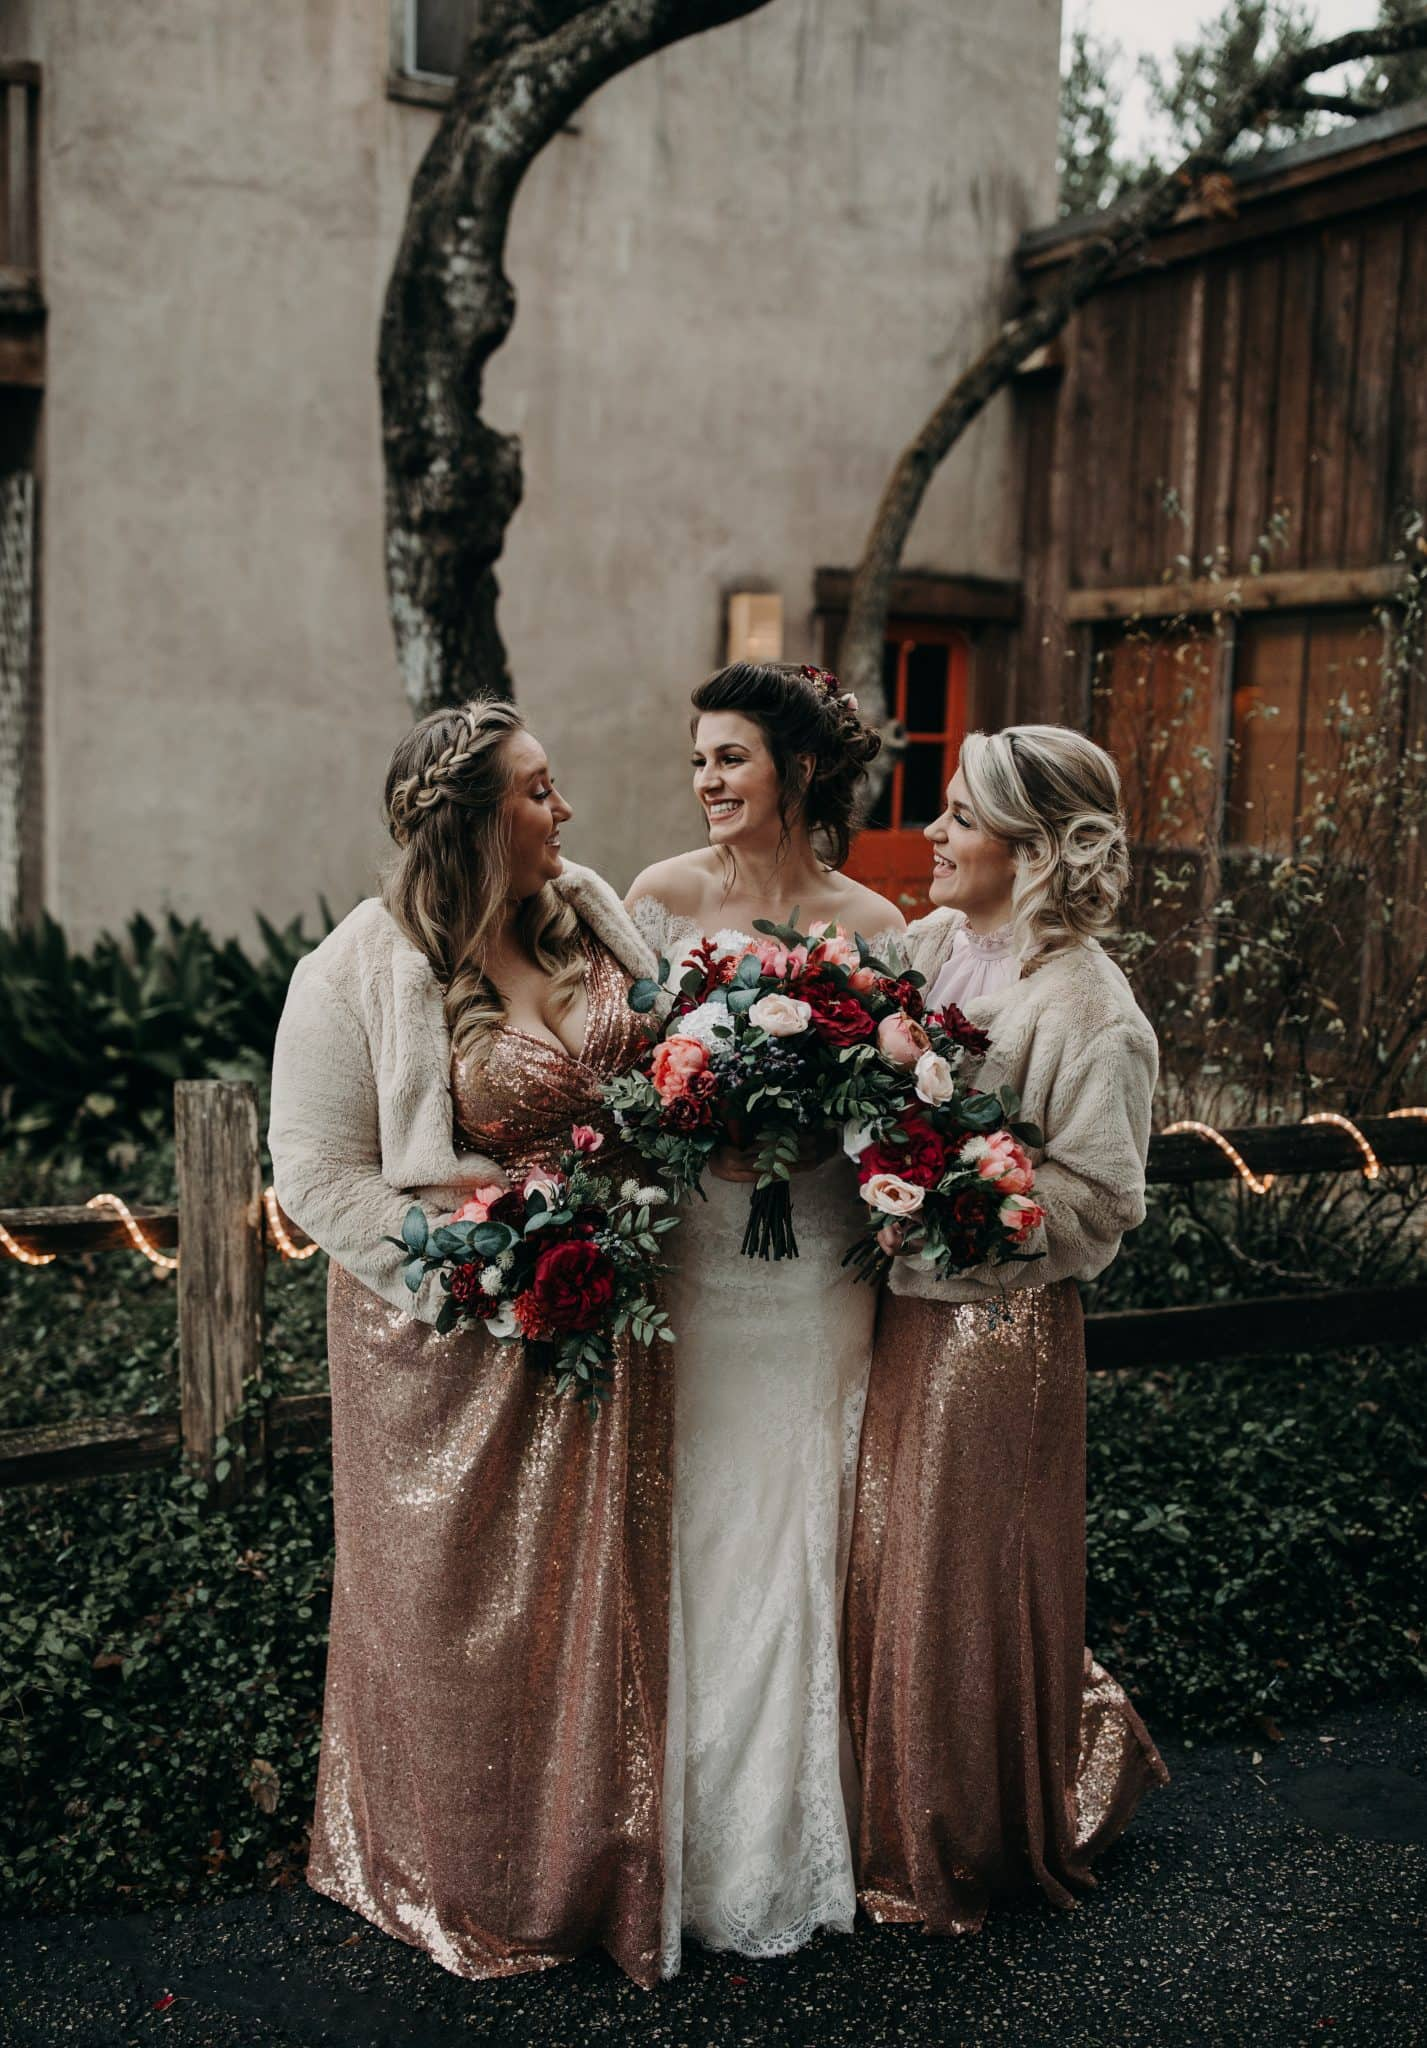 Bride and her 2 bridesmaid in sequin dresses holding their bouquets and smiling at each other on the lawn of the House on the Hill in Austin, Texas. Photograph by Austin, Texas wedding photographer Nikk Nguyen.